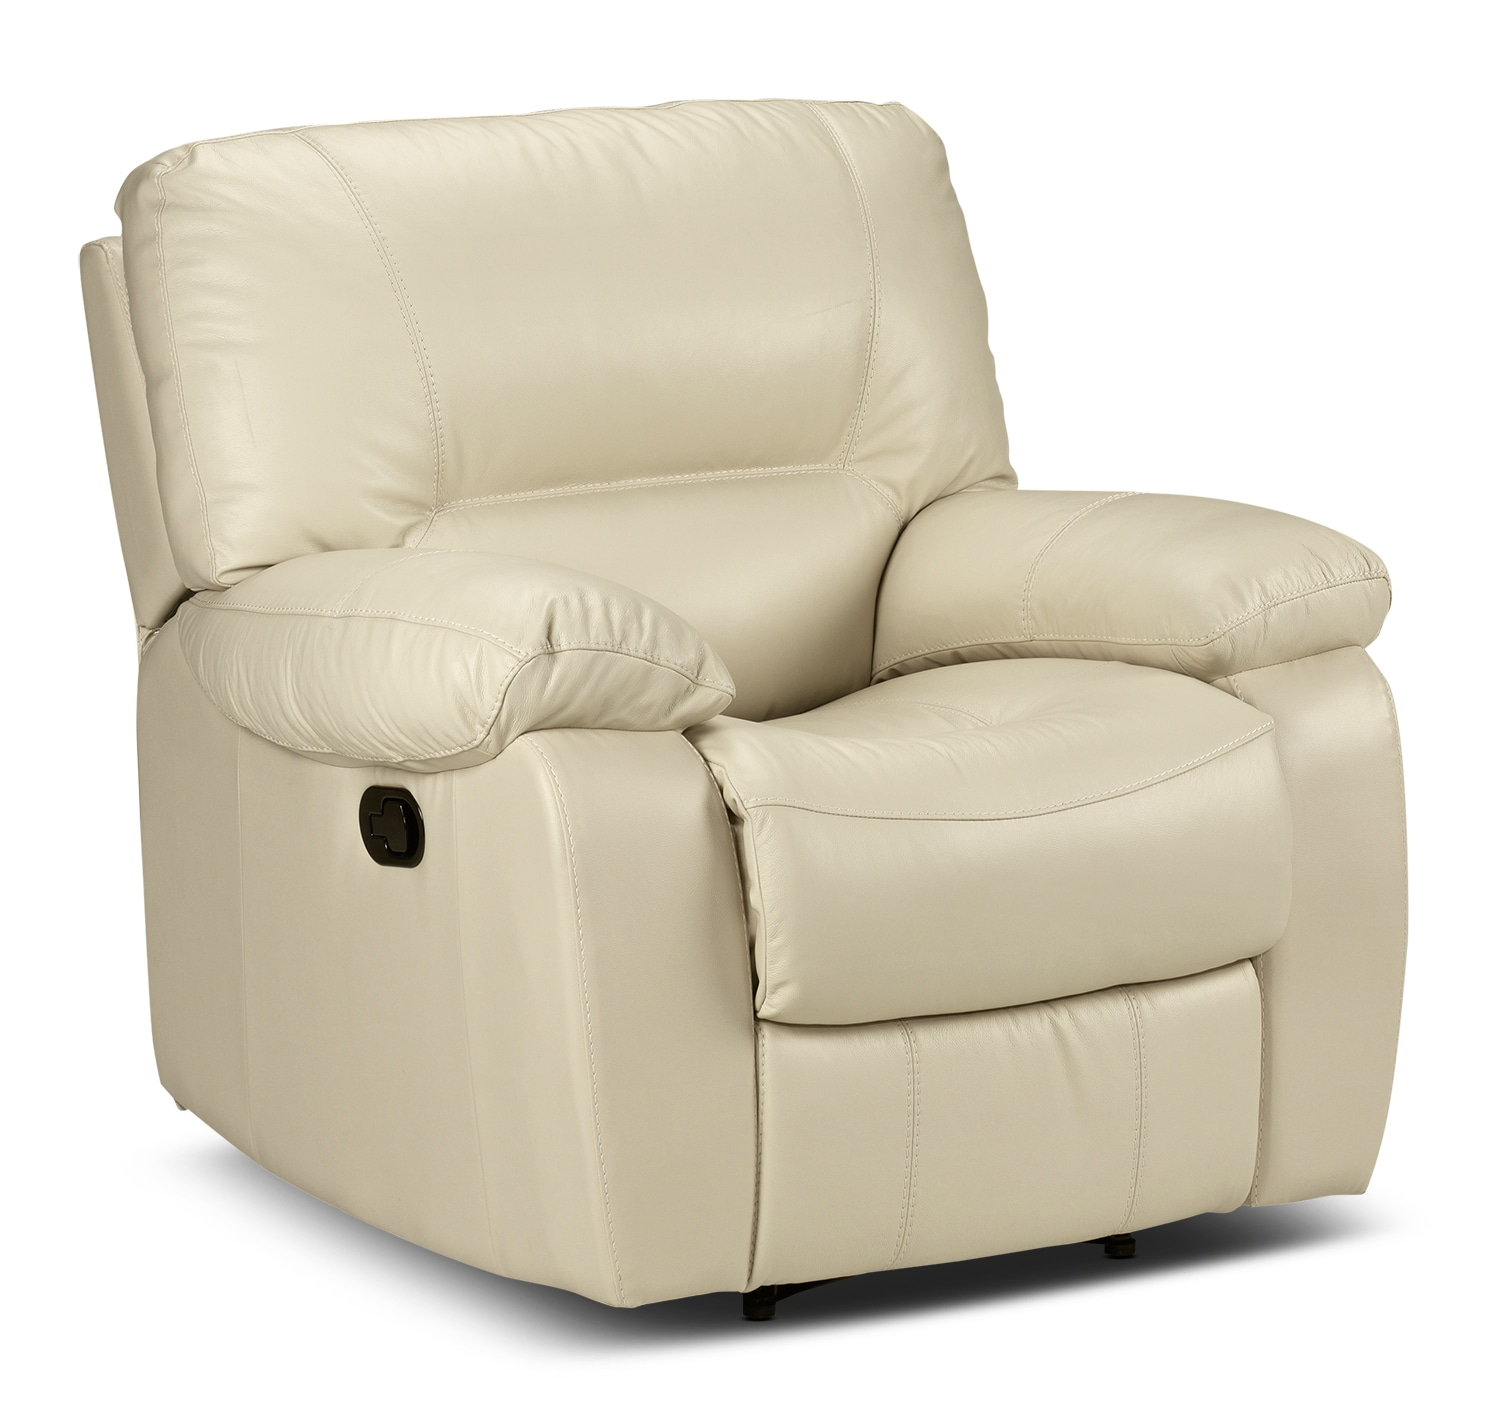 Living Room Furniture - Piermont Recliner - Bisque